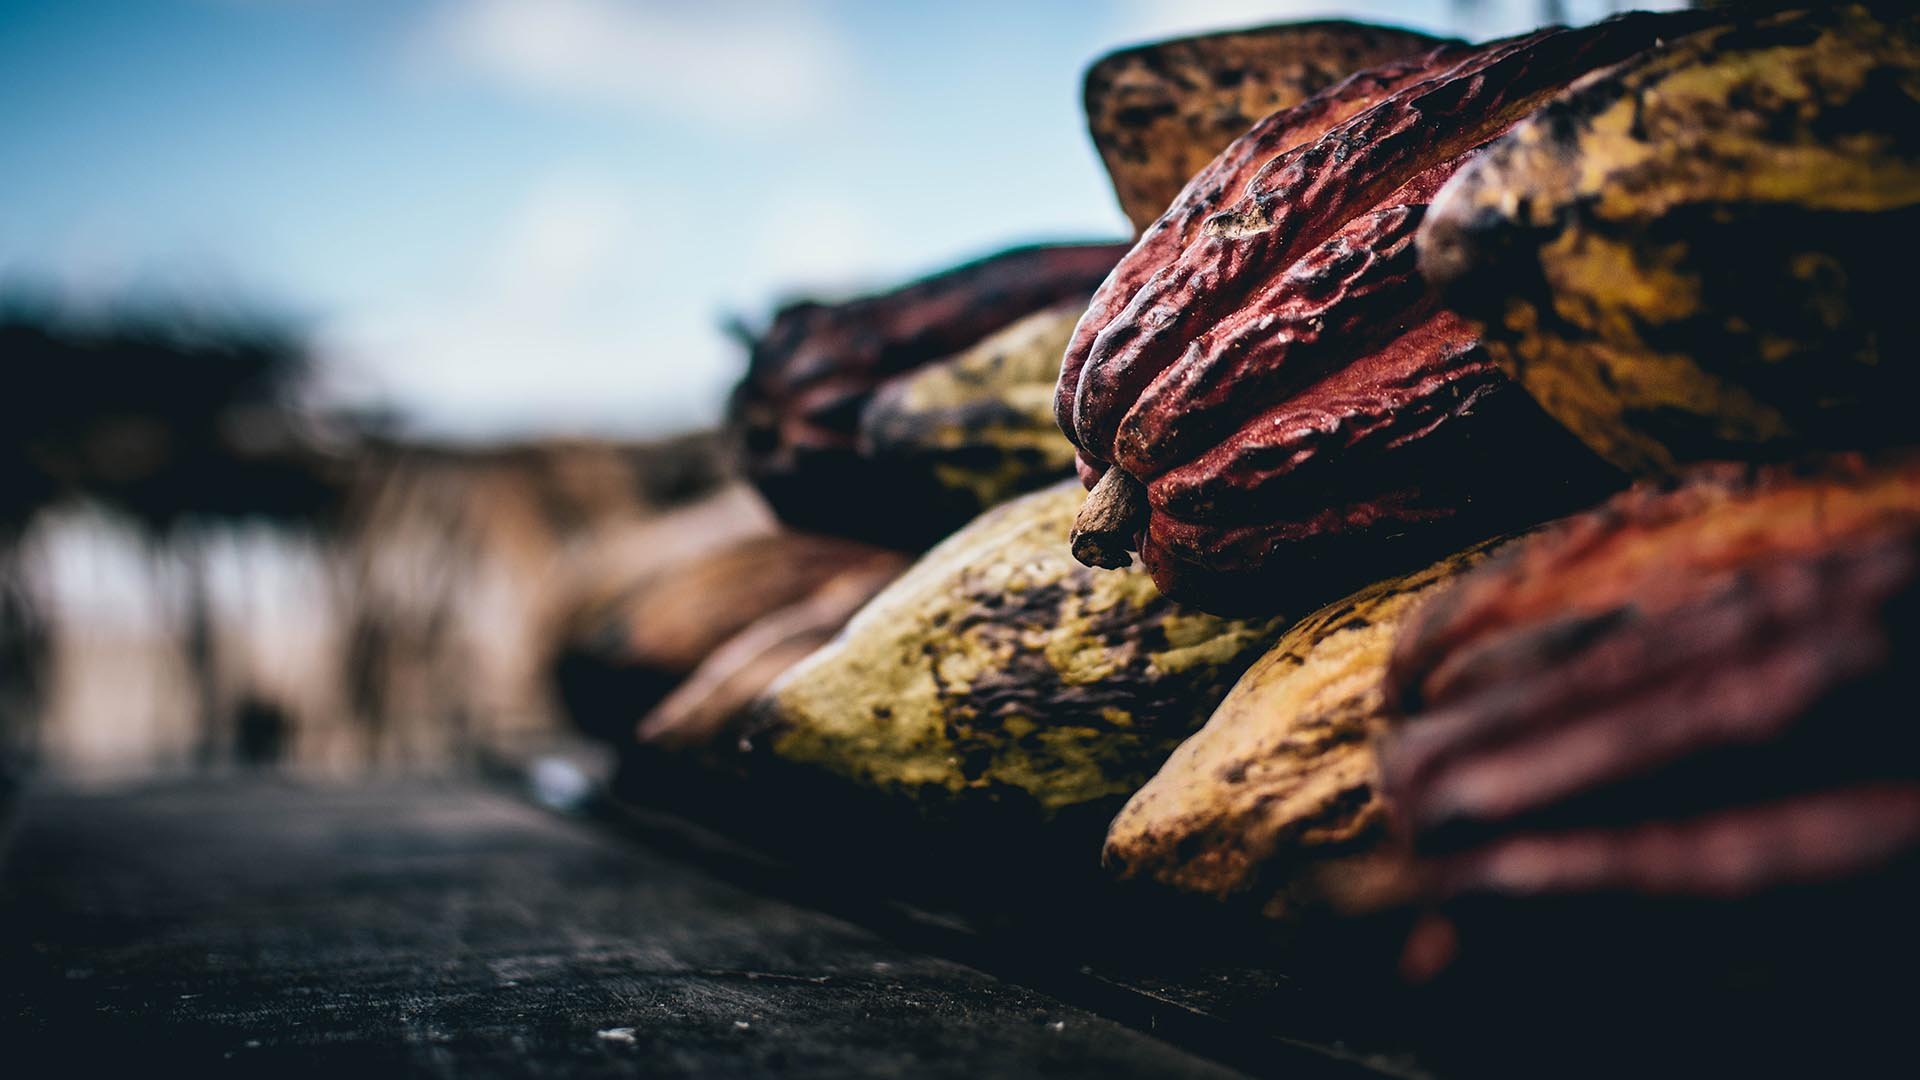 discarded cocoa pods